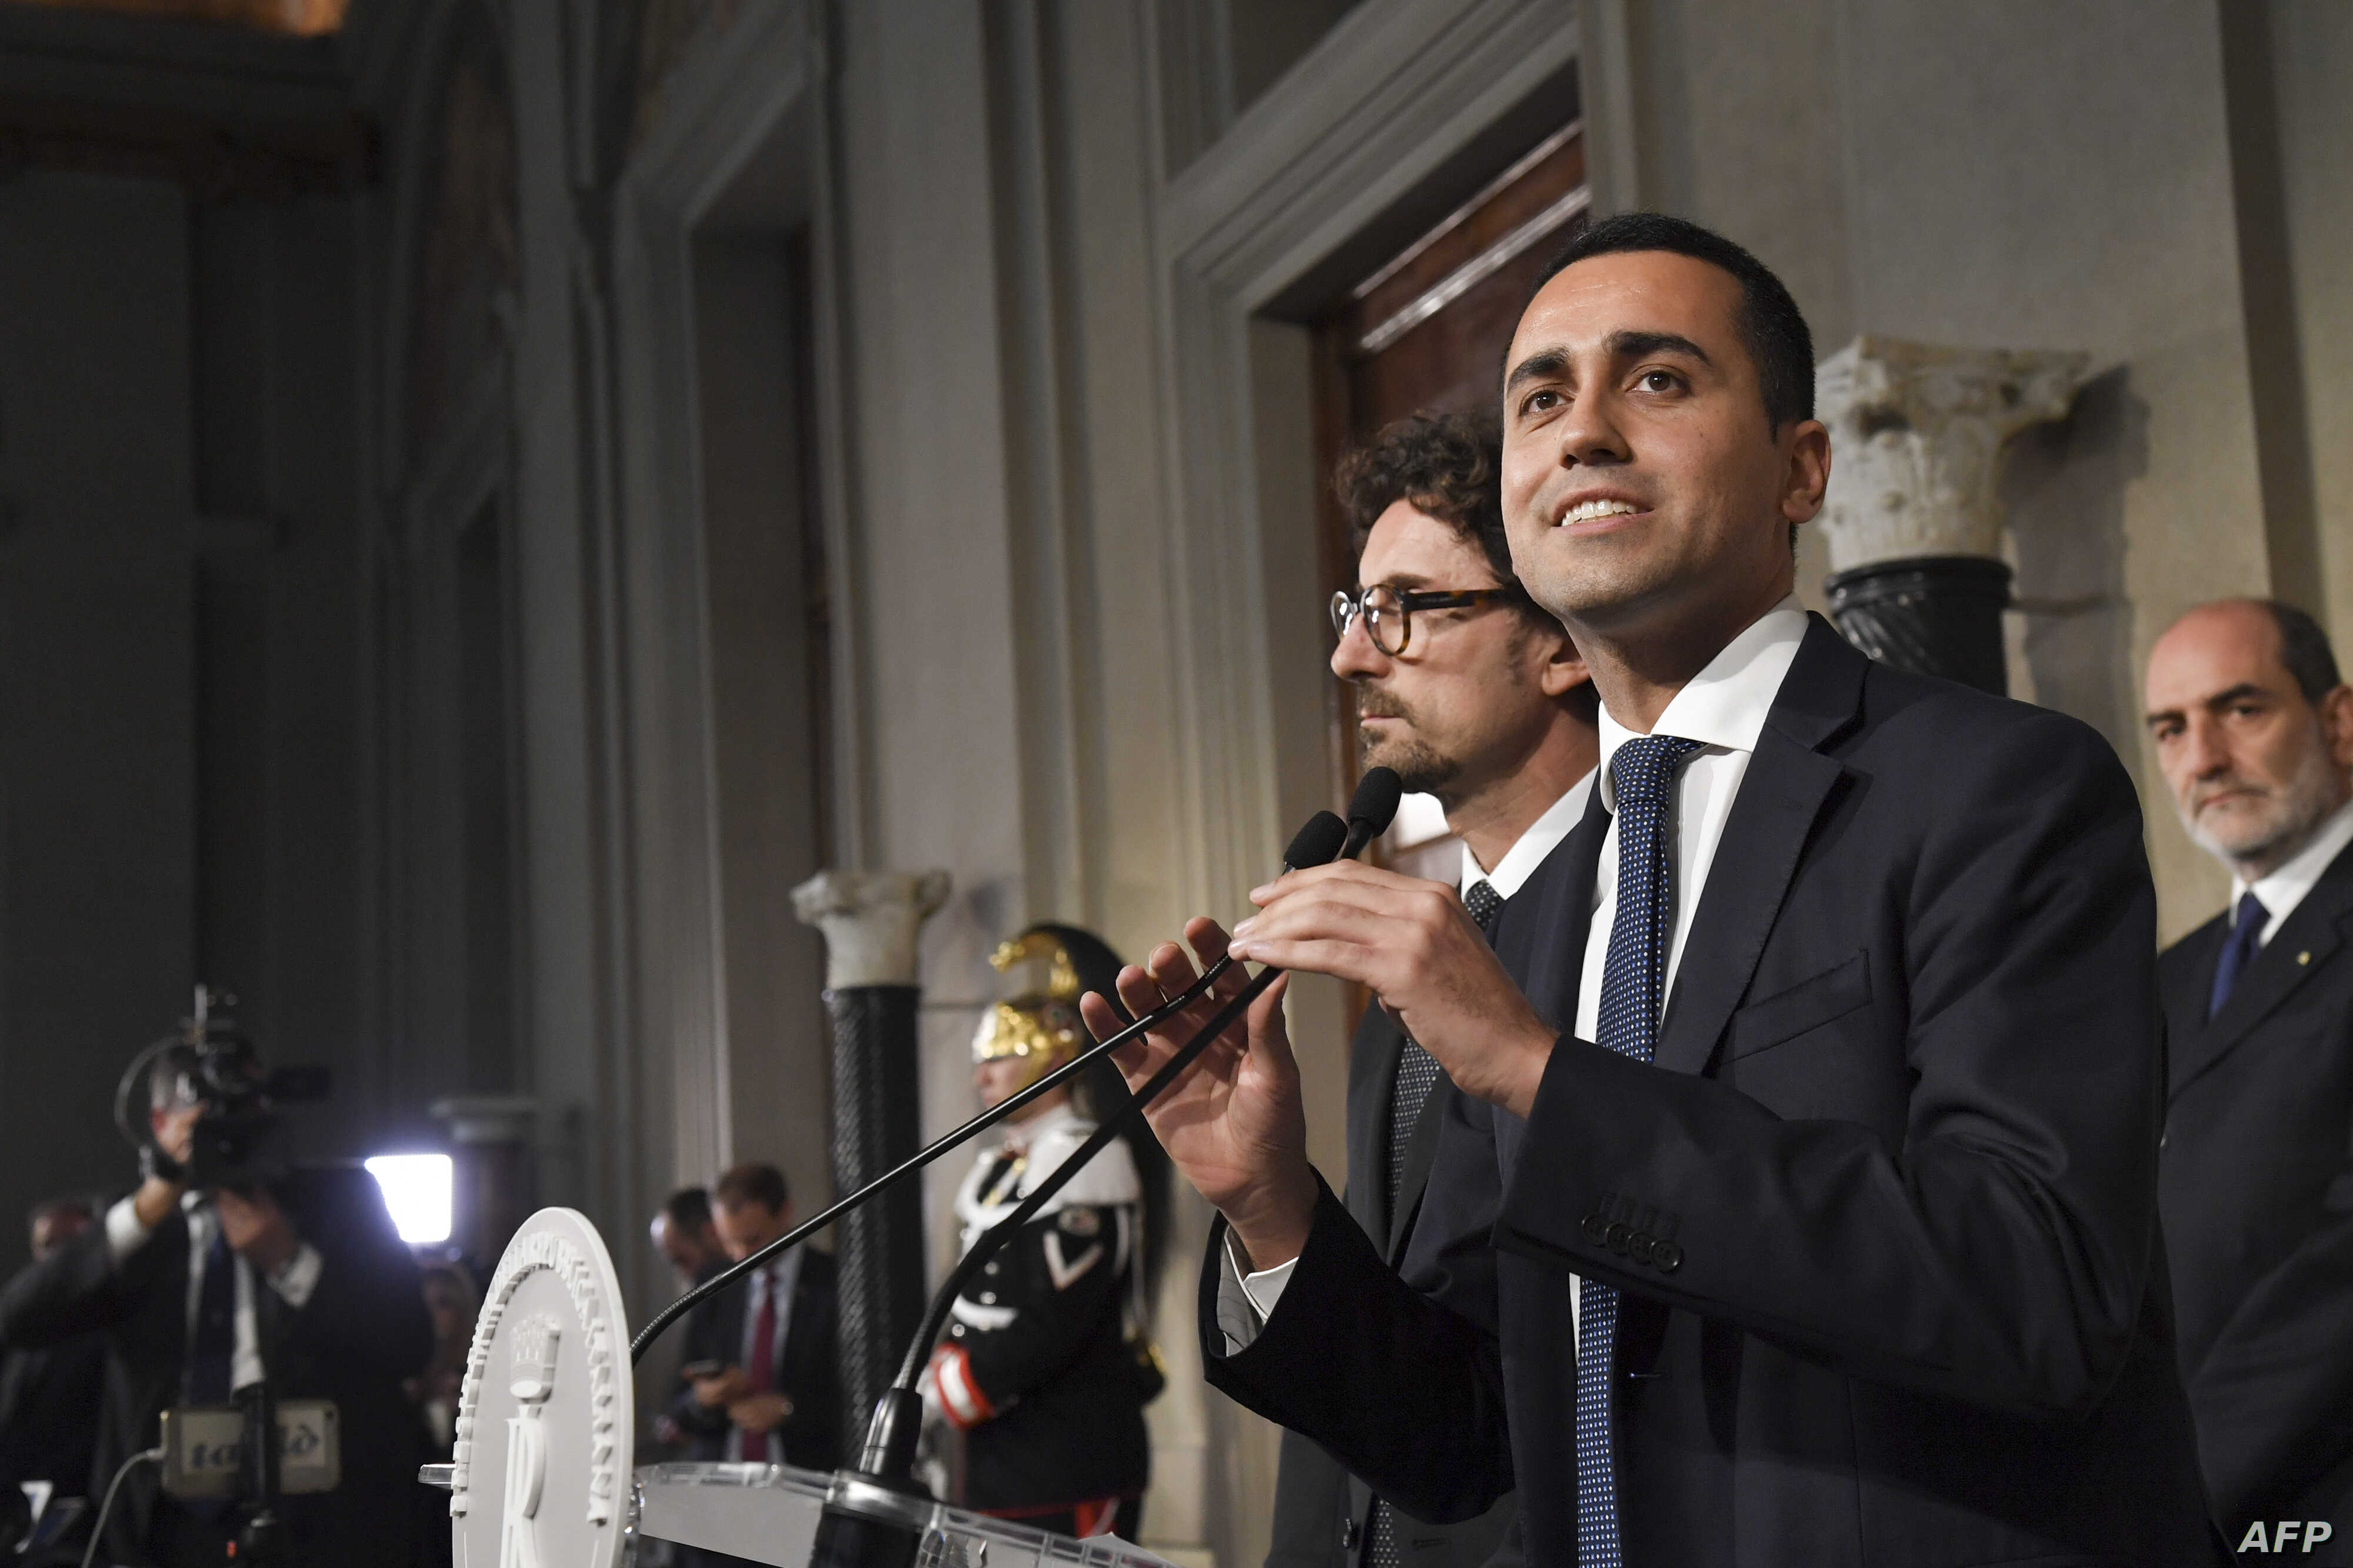 Anti-establishment Five Star Movement (M5S) leader Luigi Di Maio speaks to the press after a meeting with Italian President Sergio Mattarella as part of consultations of political parties to form a government, on May 14, 2018 at the Quirinale palace ...